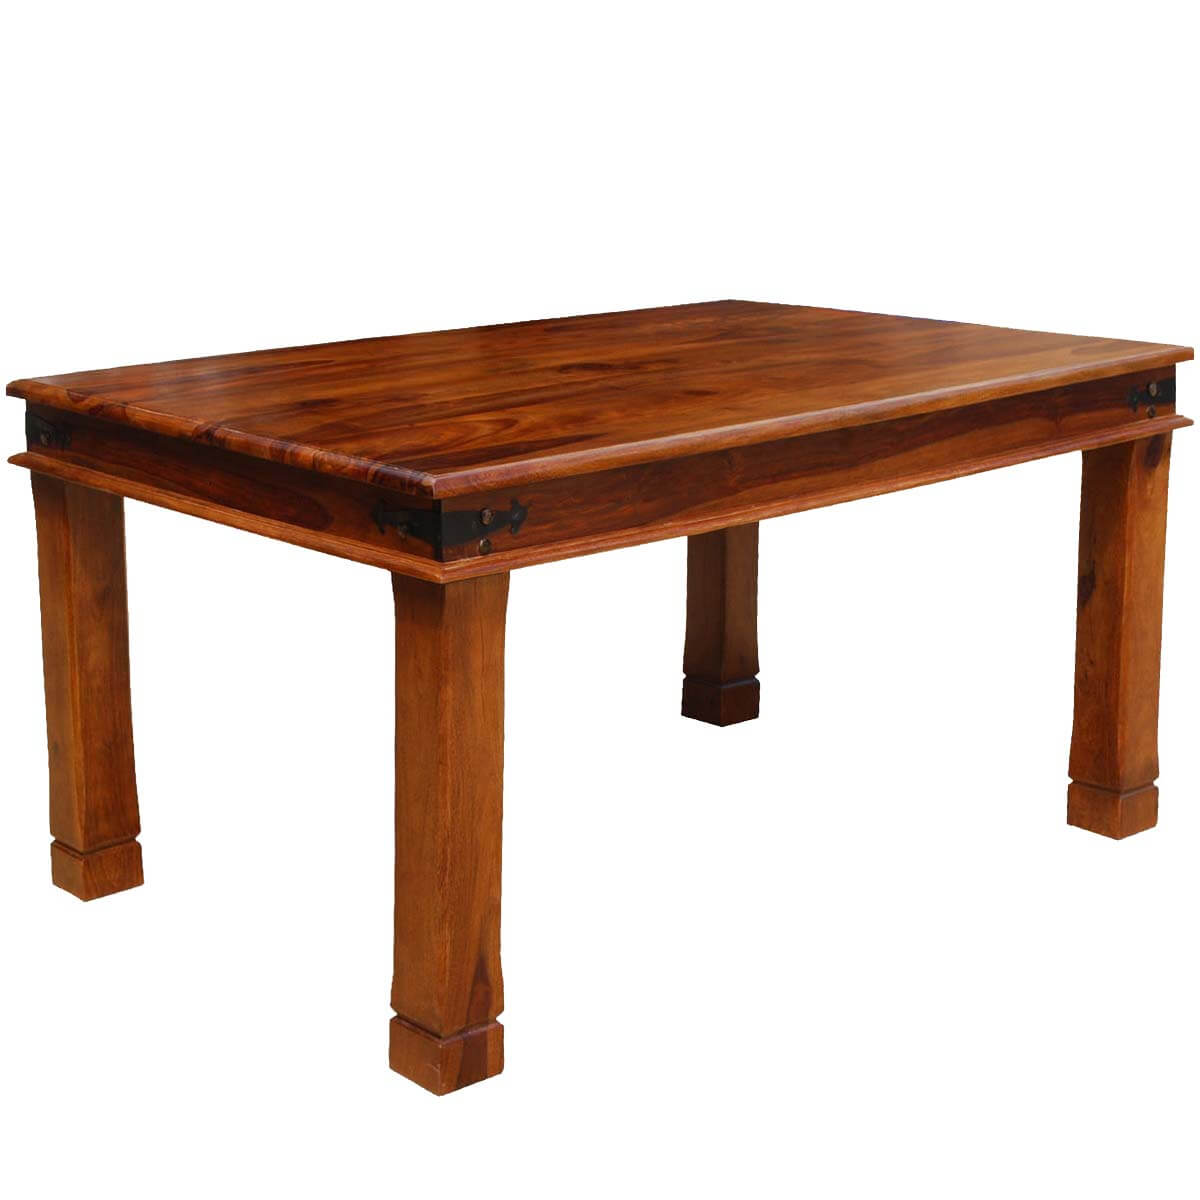 Solid Wood Kitchen Tables: Fannin Transitional Solid Wood Double Edge Dining Table